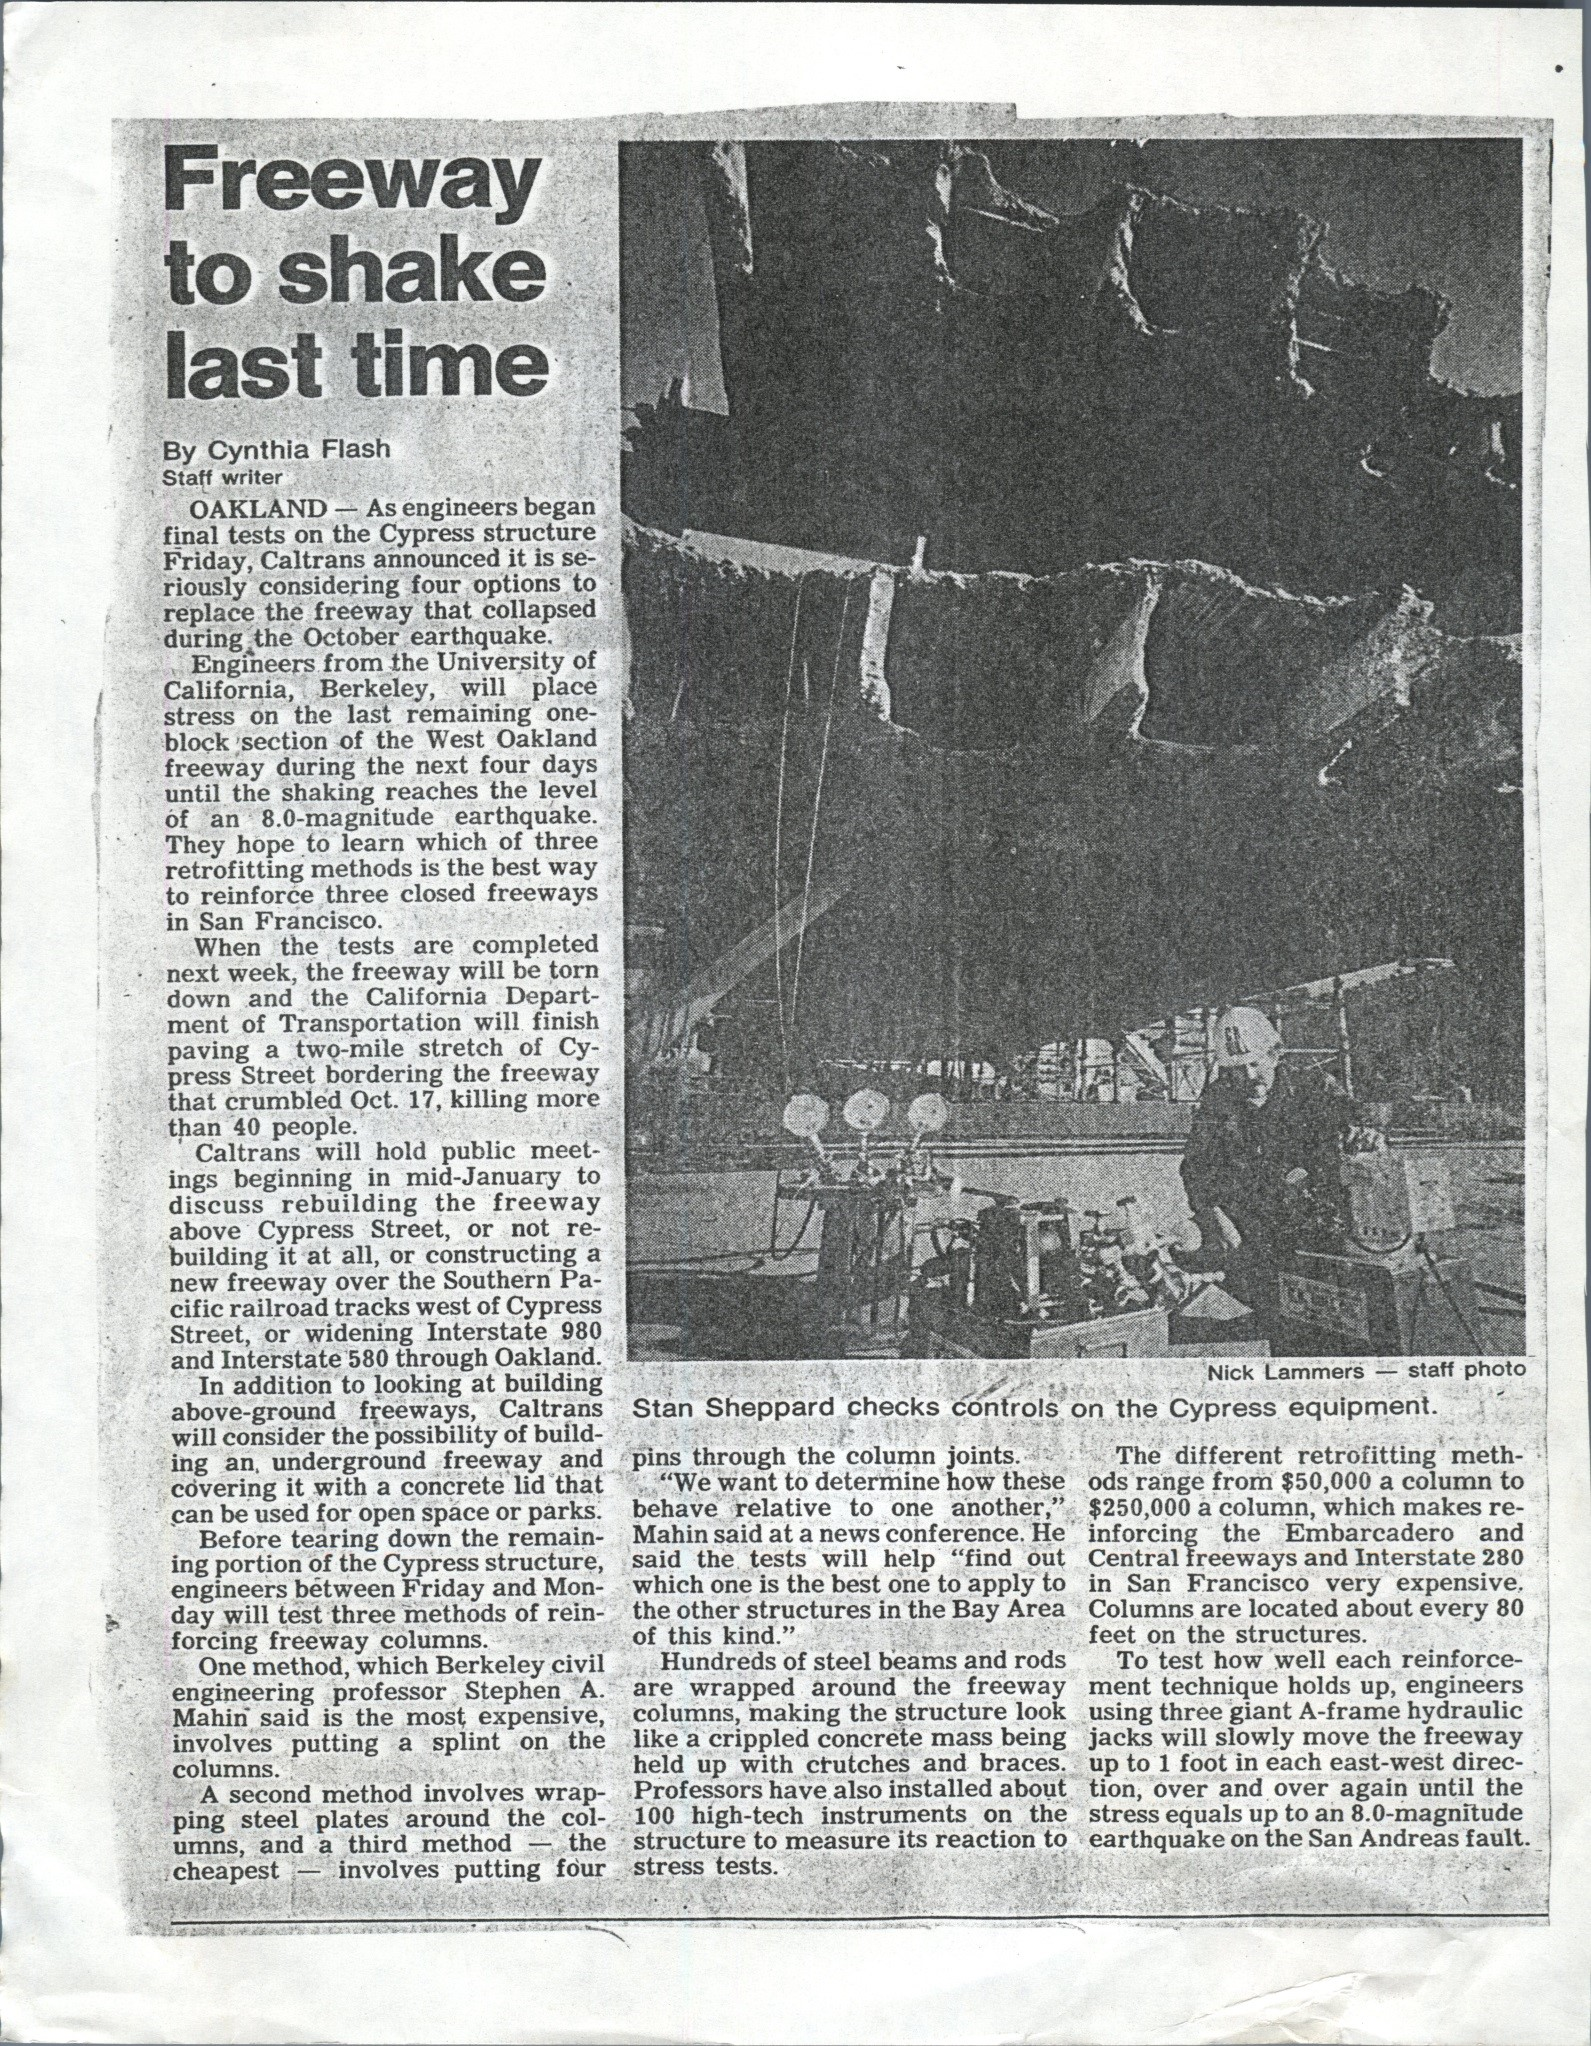 EARTHQUAKE ARTICLE